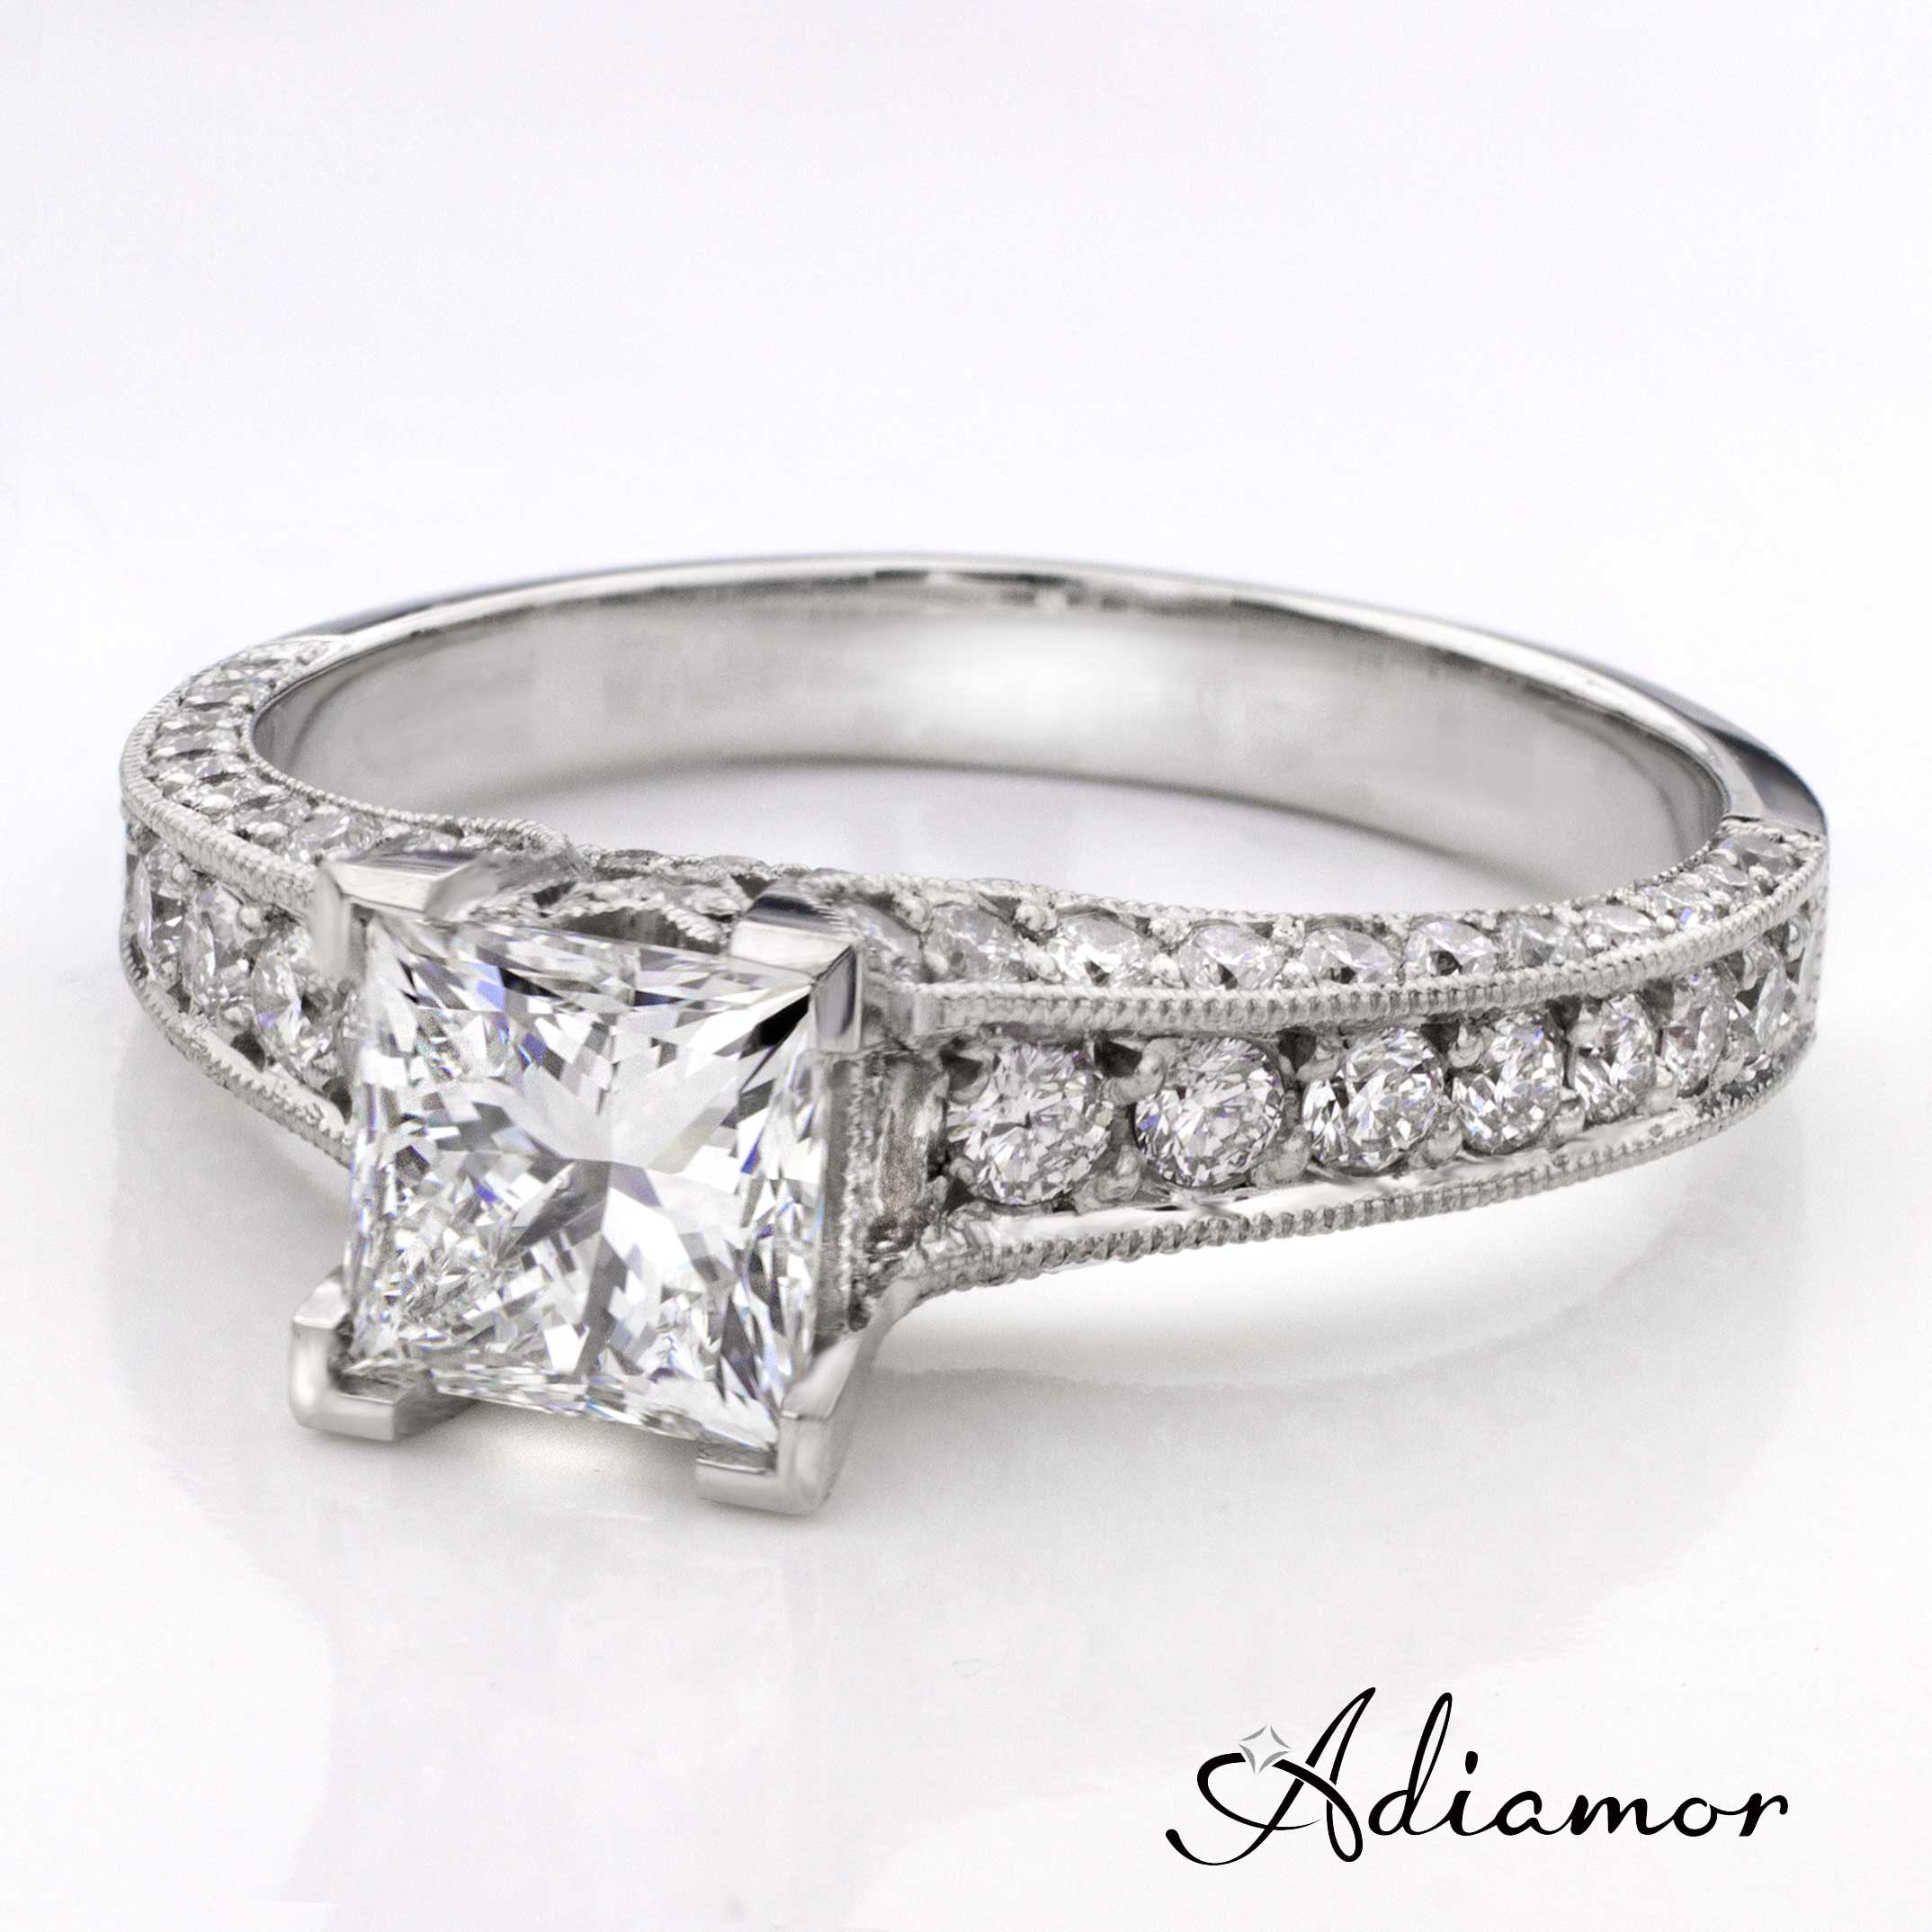 radiant s yoursyour rings post engagement weddingplanning yours your comments wedding r sos so